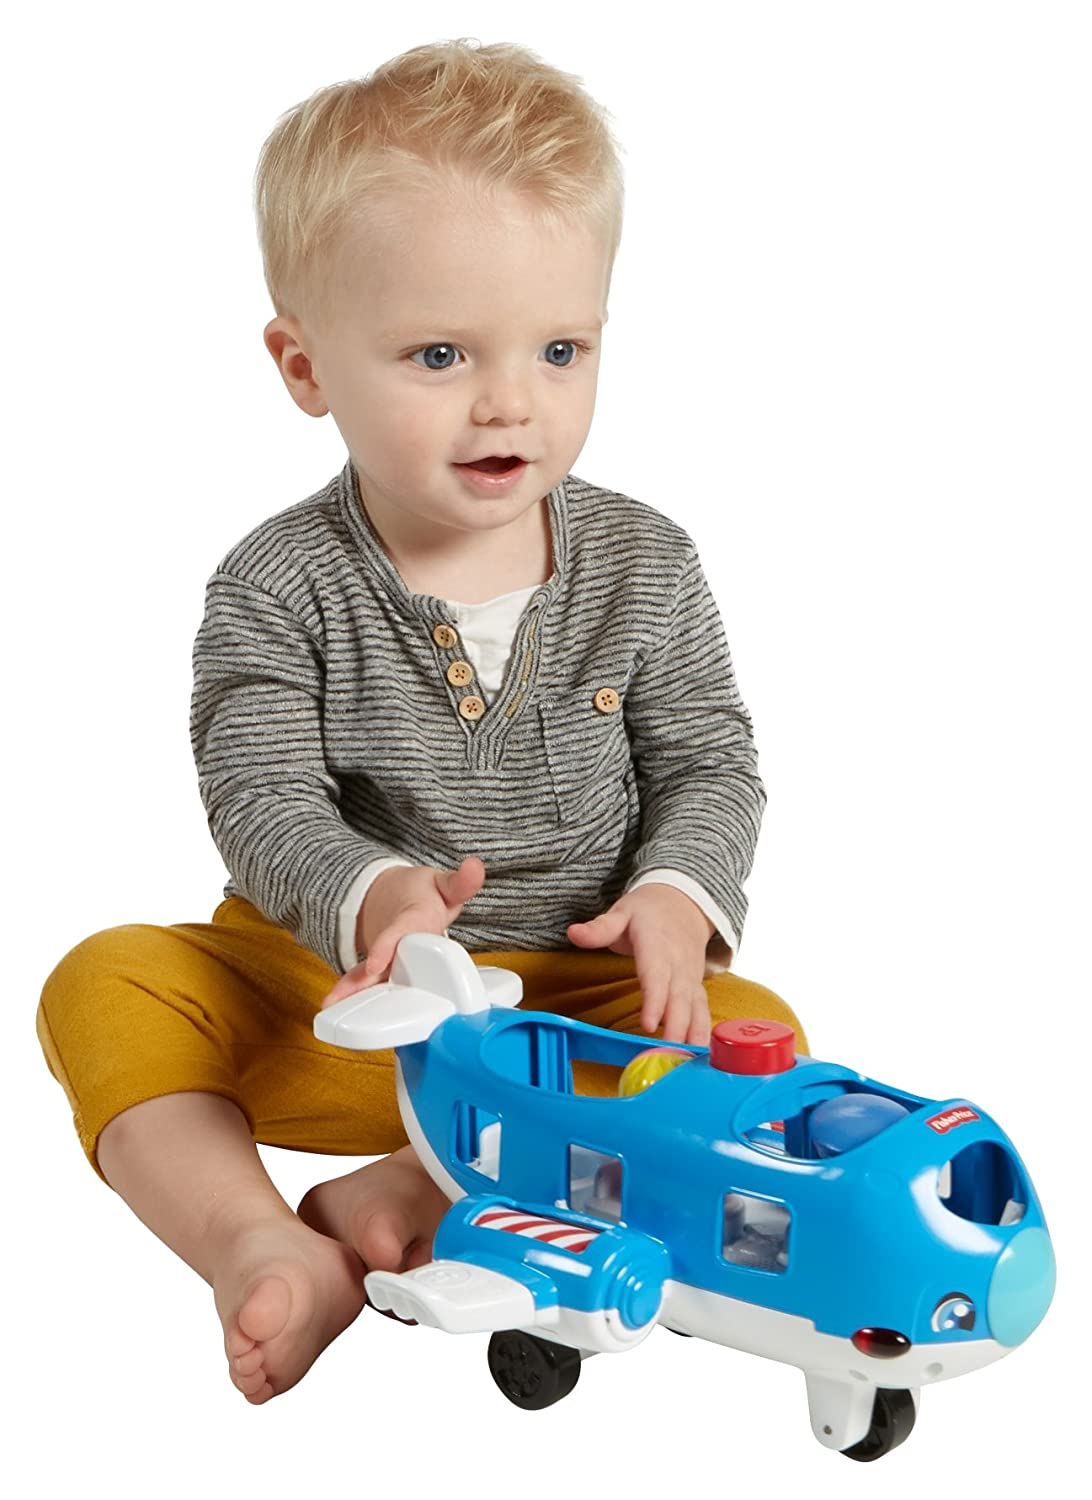 Fisher-Price Little People Travel Together Airplane Mattel FPM49